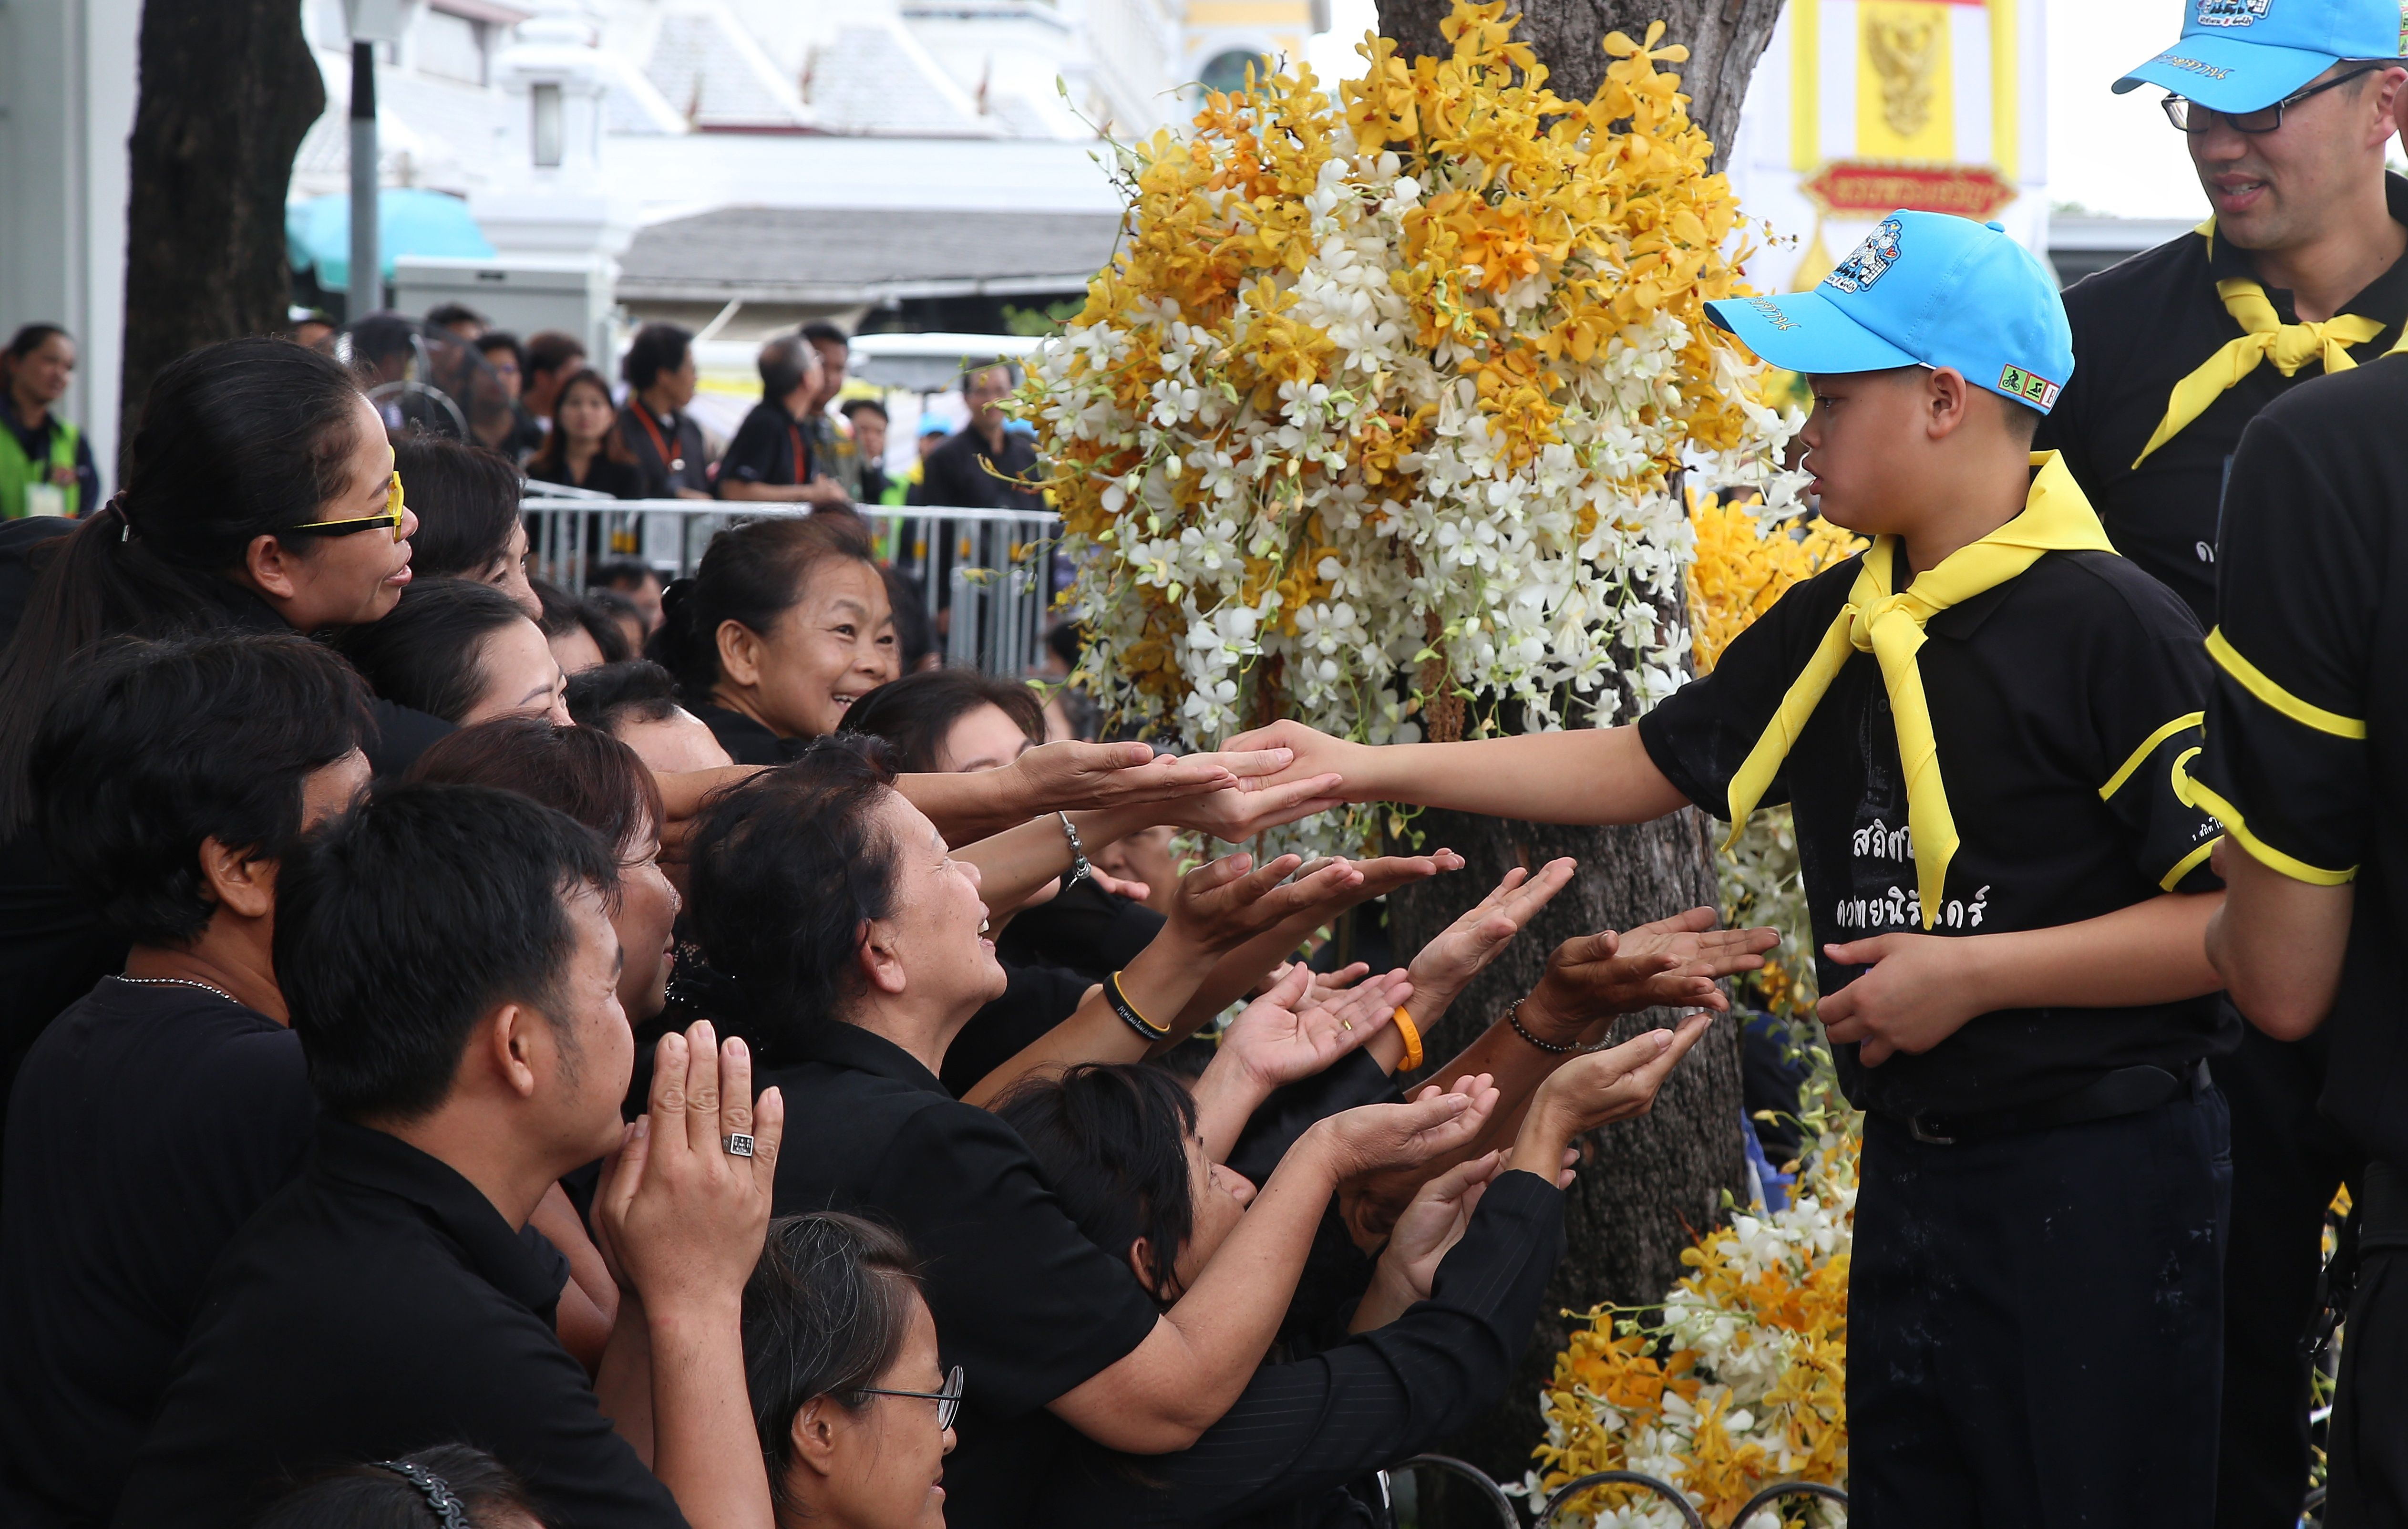 This picture by Thailand's Dailynews shows Prince Dipangkorn Rasmijoti (2nd R), 12, greeting well-wishers in Bangkok on October 25, 2017, near the site of where his grandfather, the late Thai King Bhumibol Adulyadej, will be cremated on October 26.